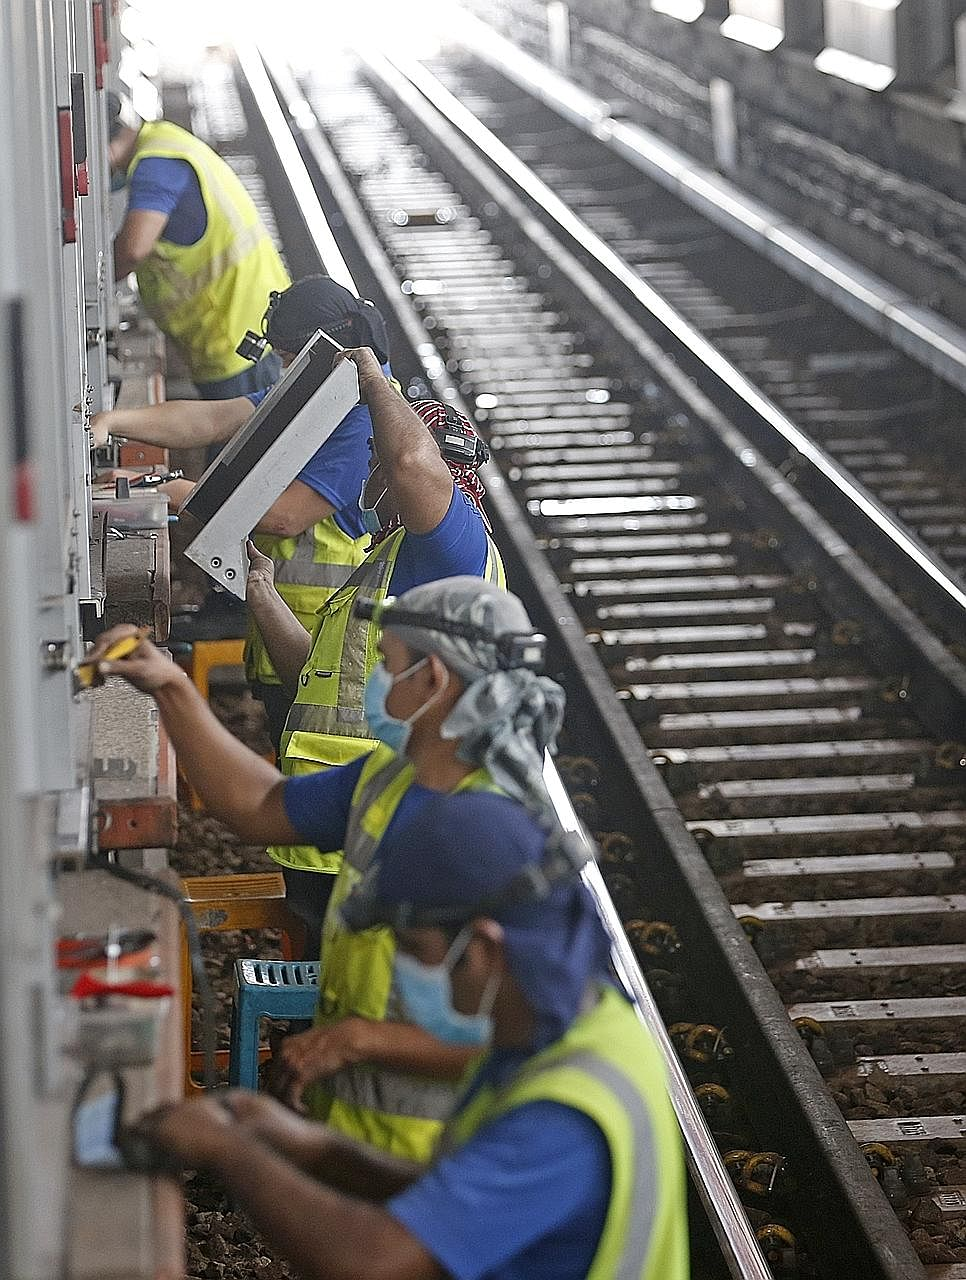 Maintenance work being done at Jurong East station yesterday. Overall, the first weekend of planned service disruptions went smoothly although many commuters were caught off guard.